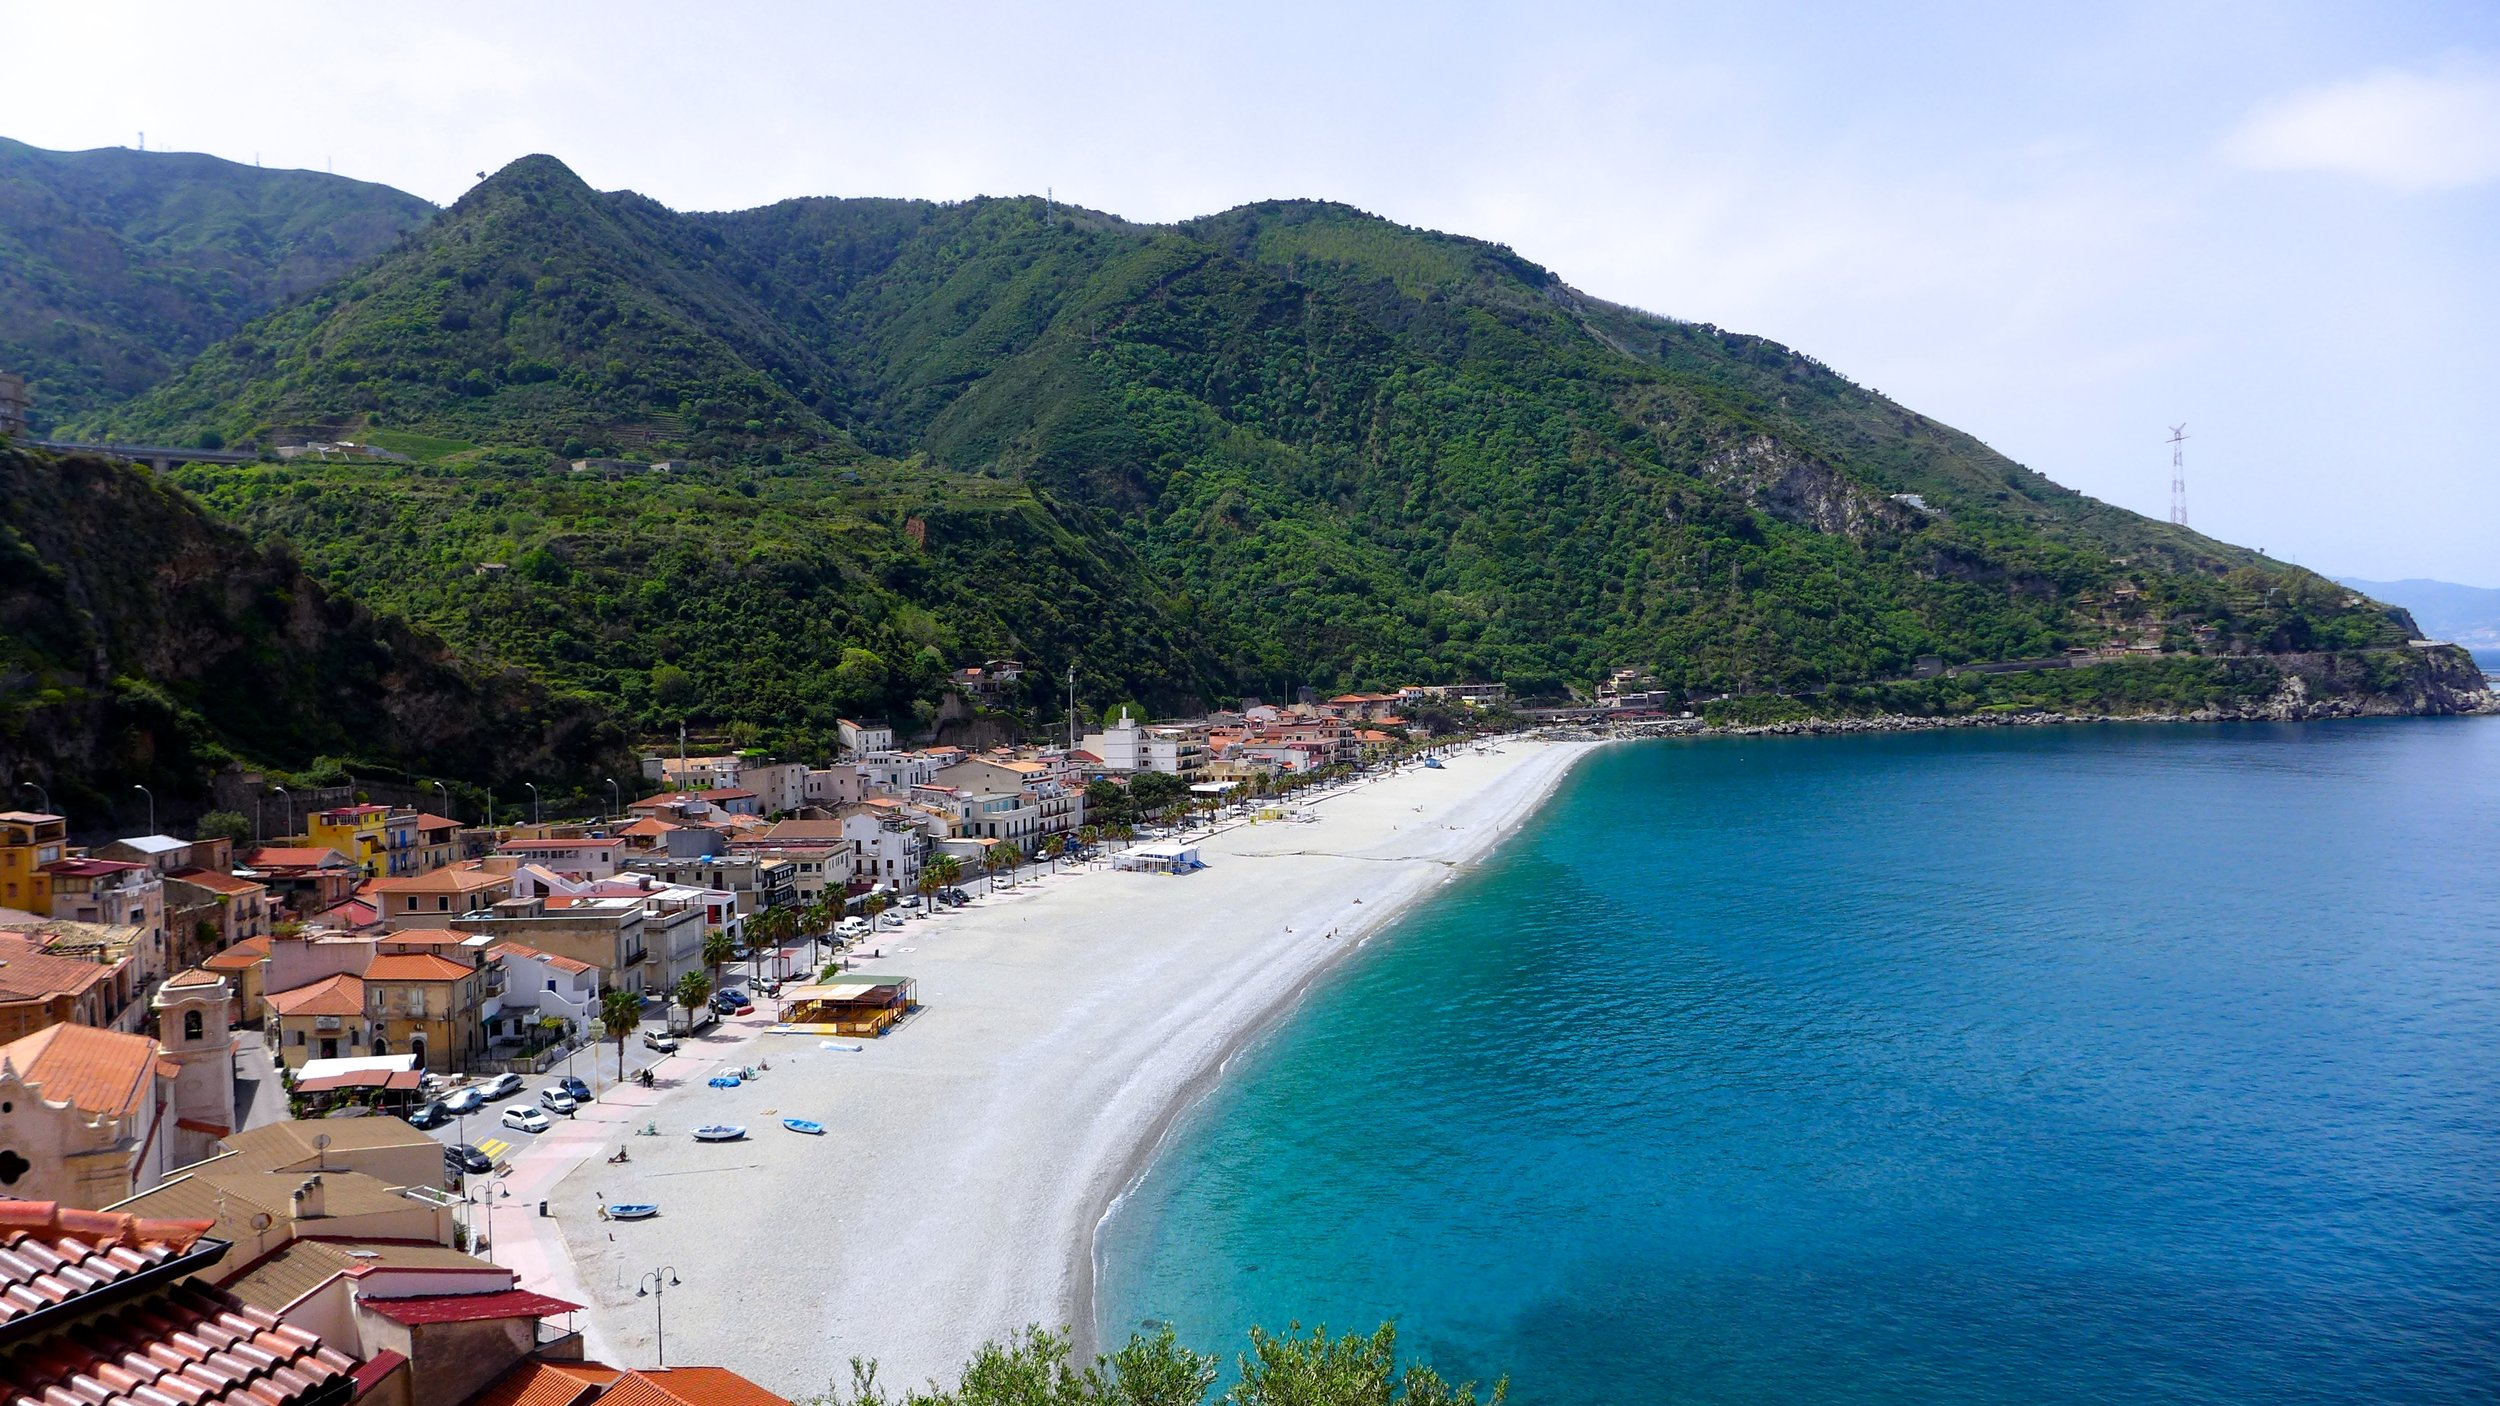 We want to help you discover the beauty of Calabria and the Southern Italian lifestyle.